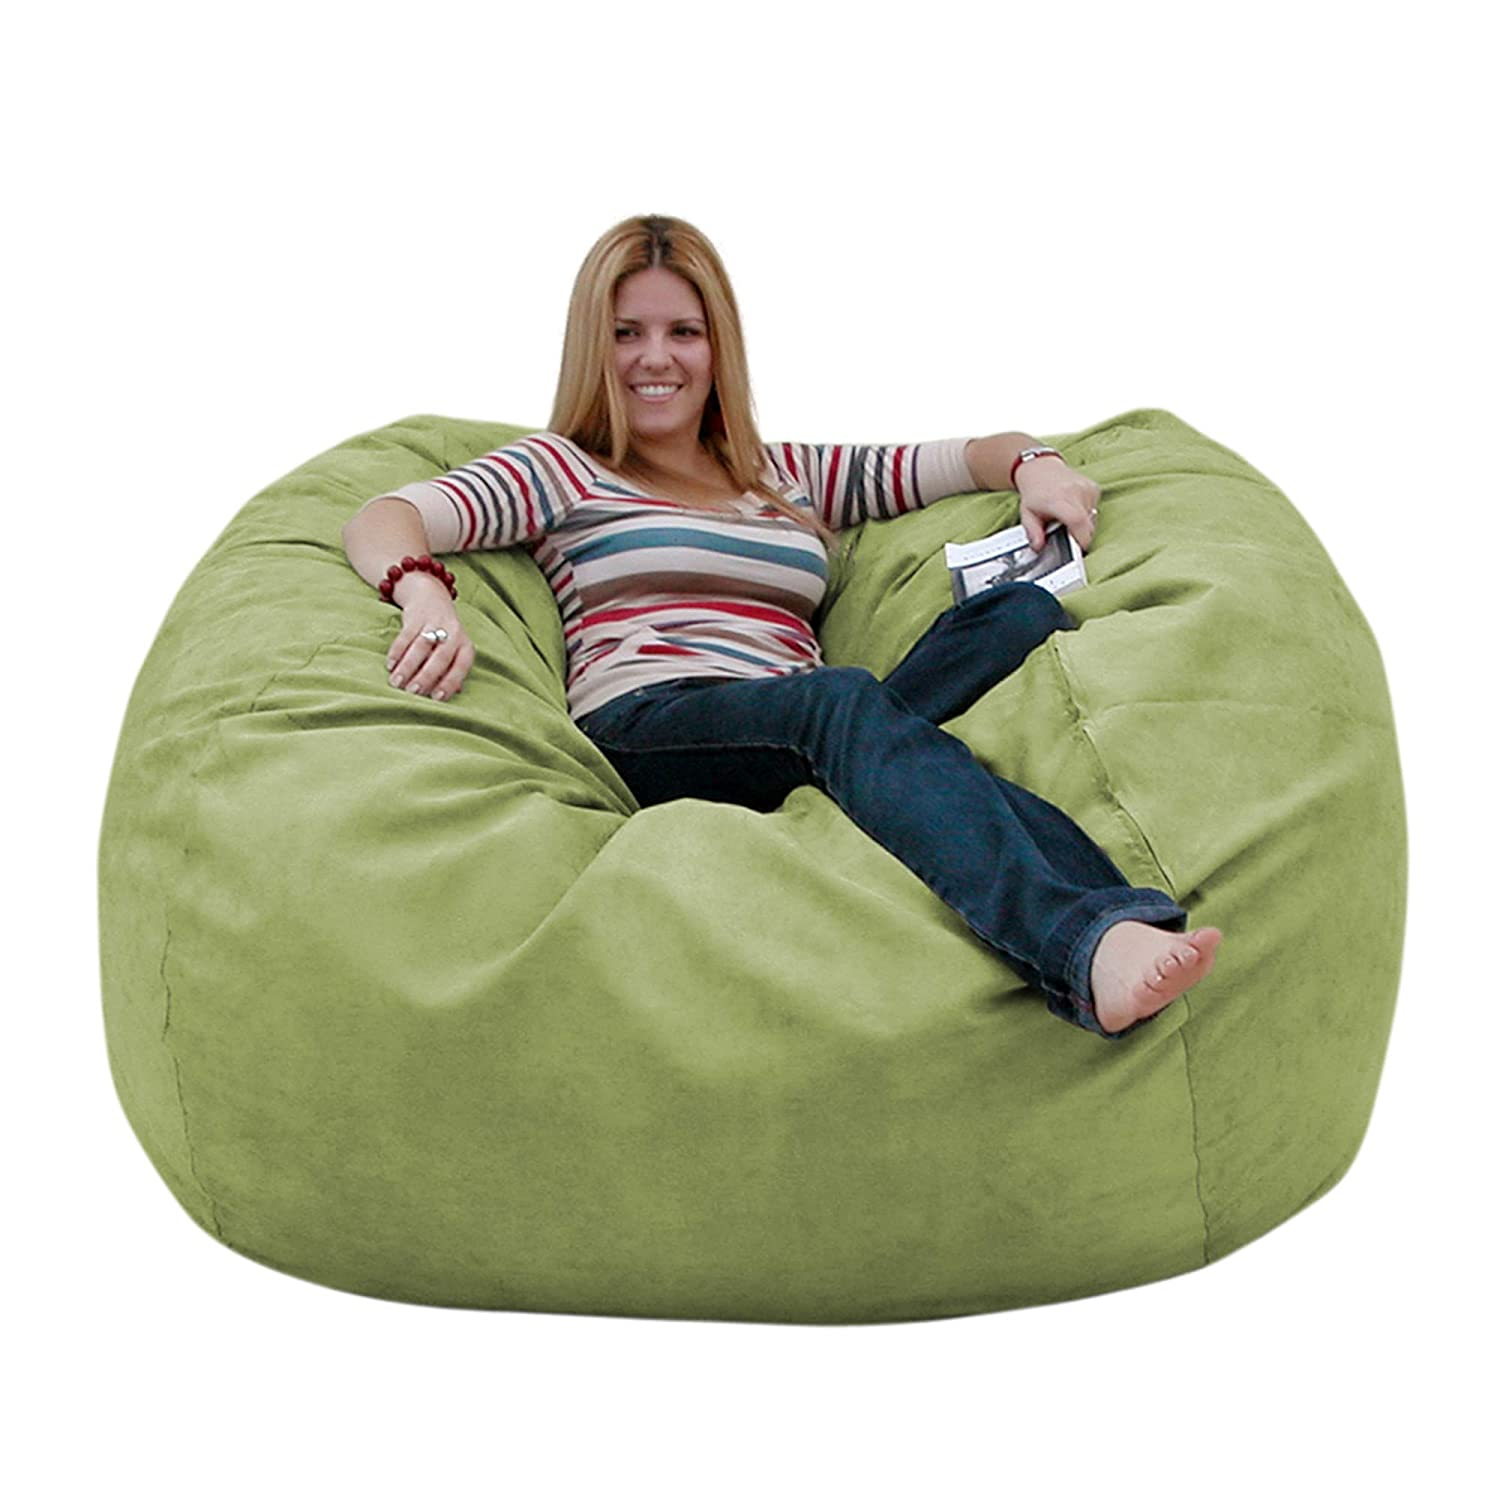 Amazon Com Cozy Sack 5 Feet Bean Bag Chair Large Lime Kitchen Dining